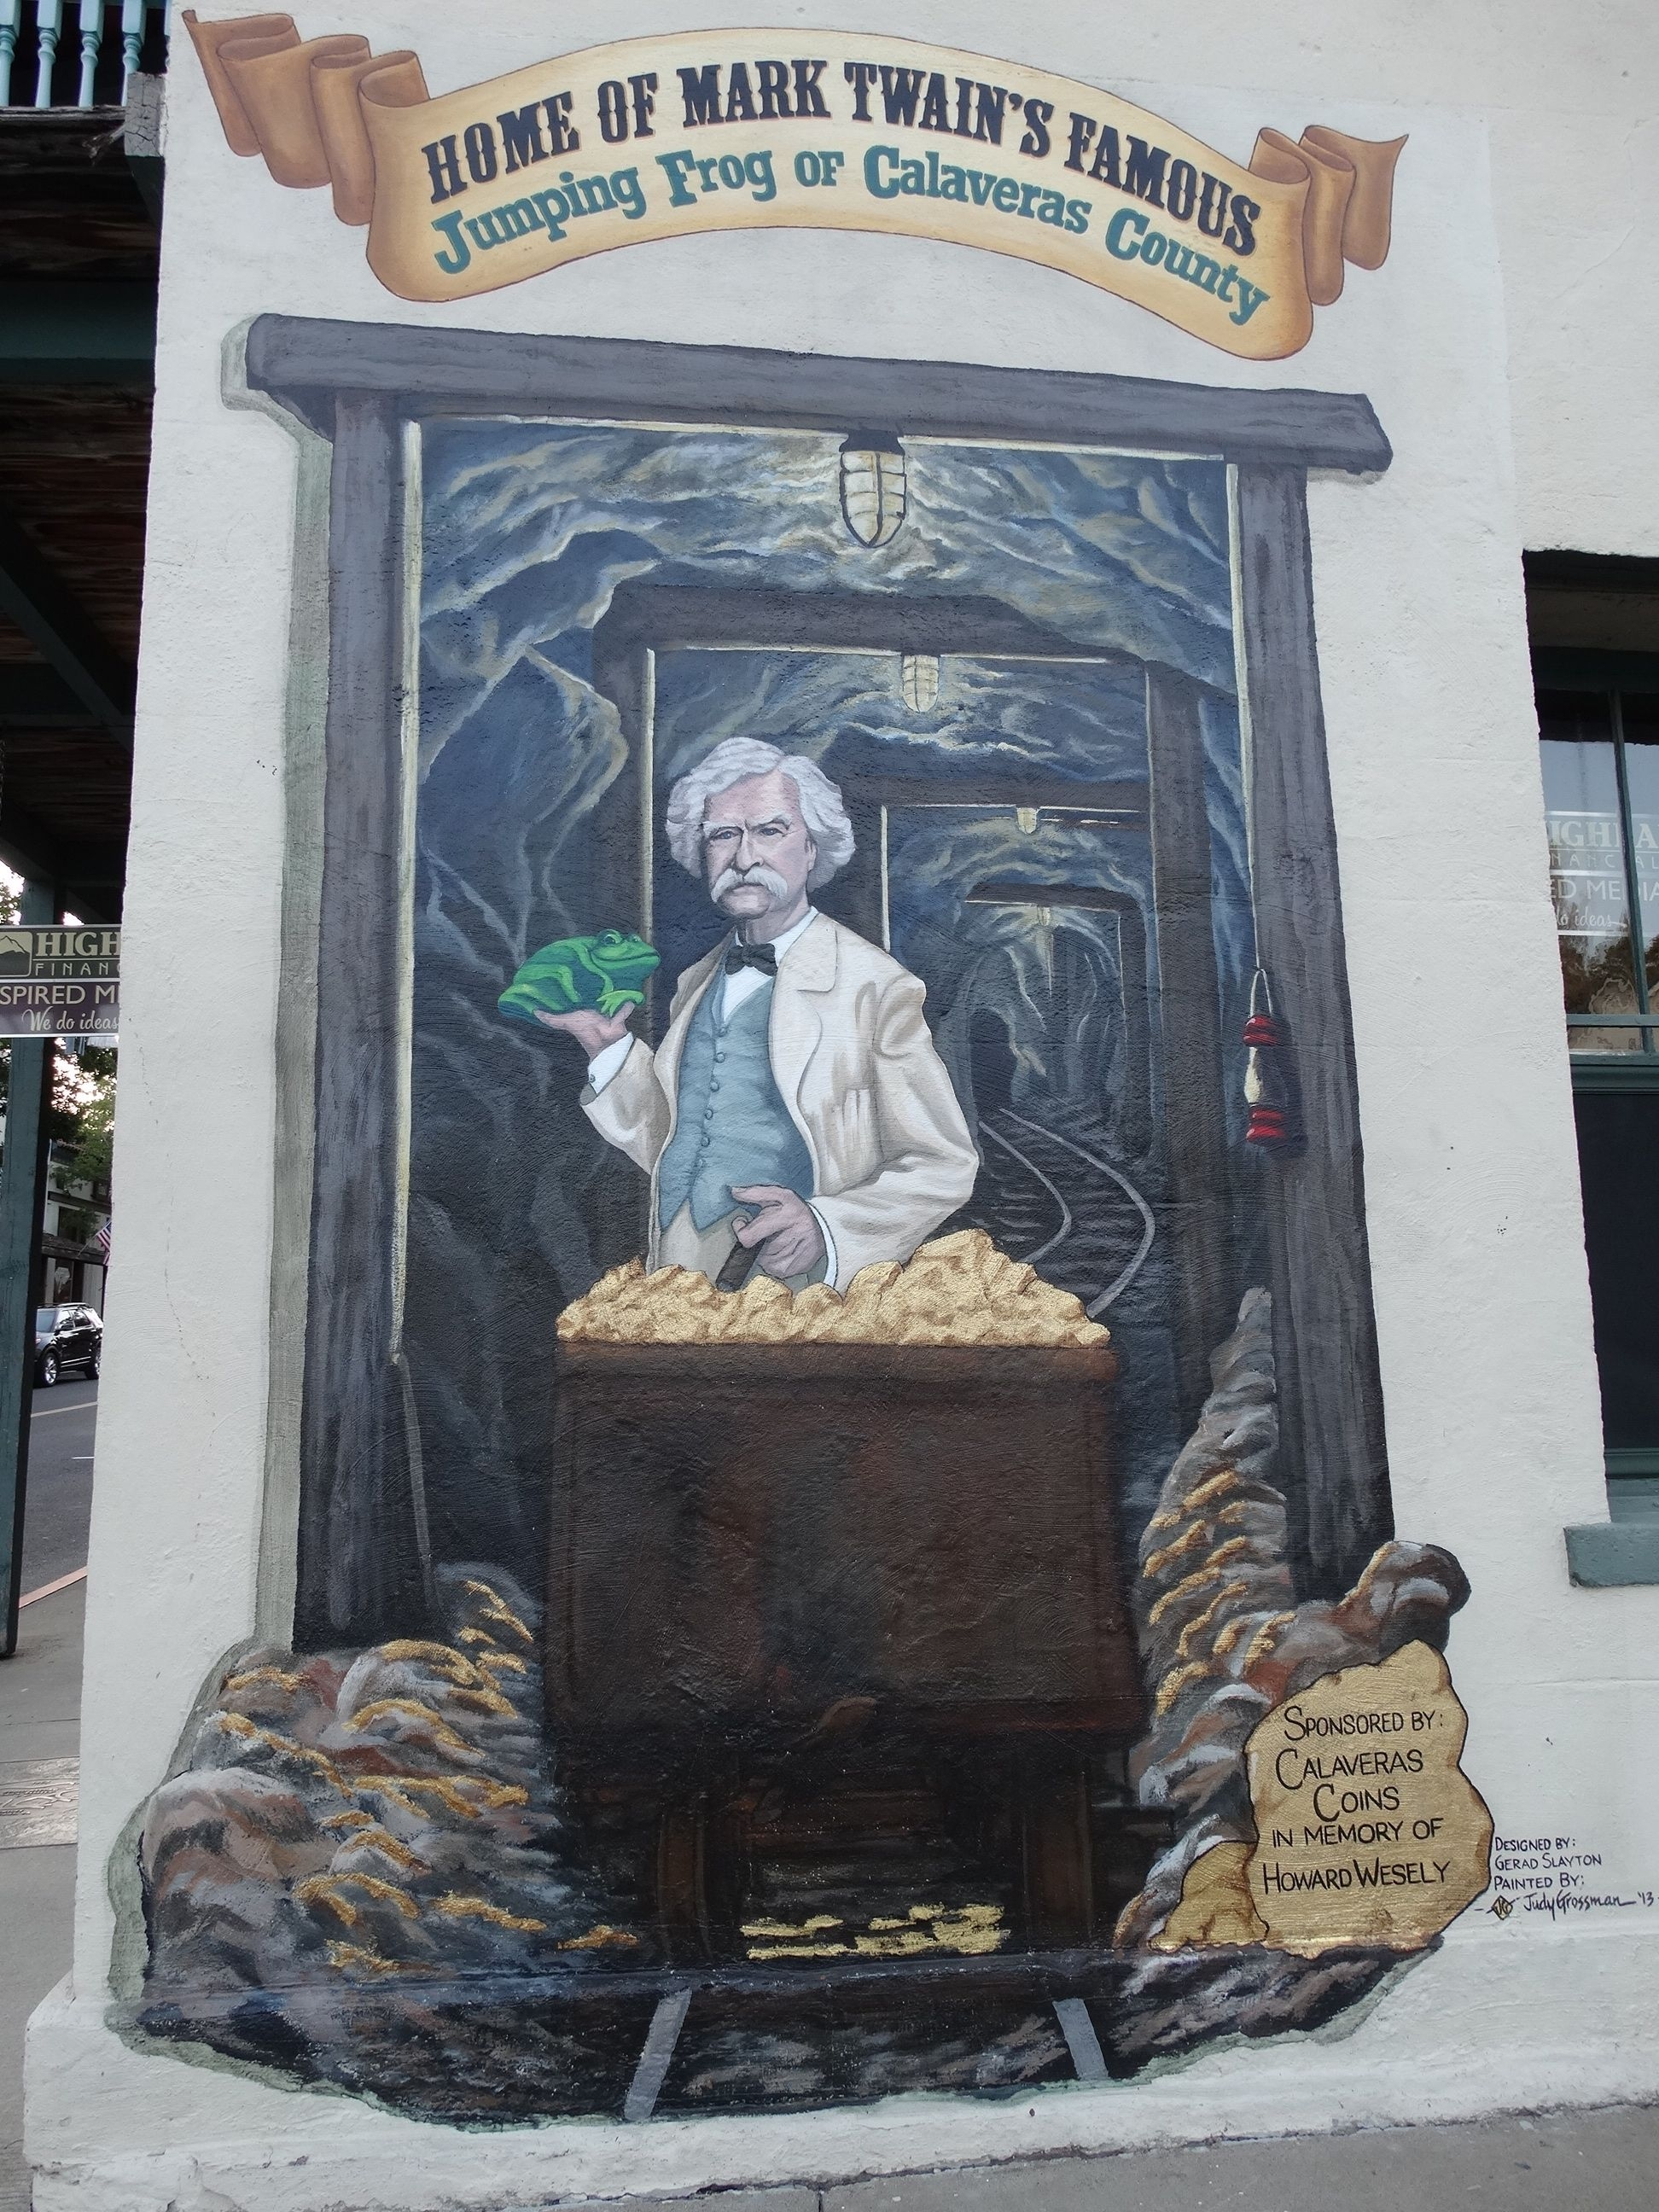 Home of Mark Twain Famous Jumping Frog of Calaveras County Mural